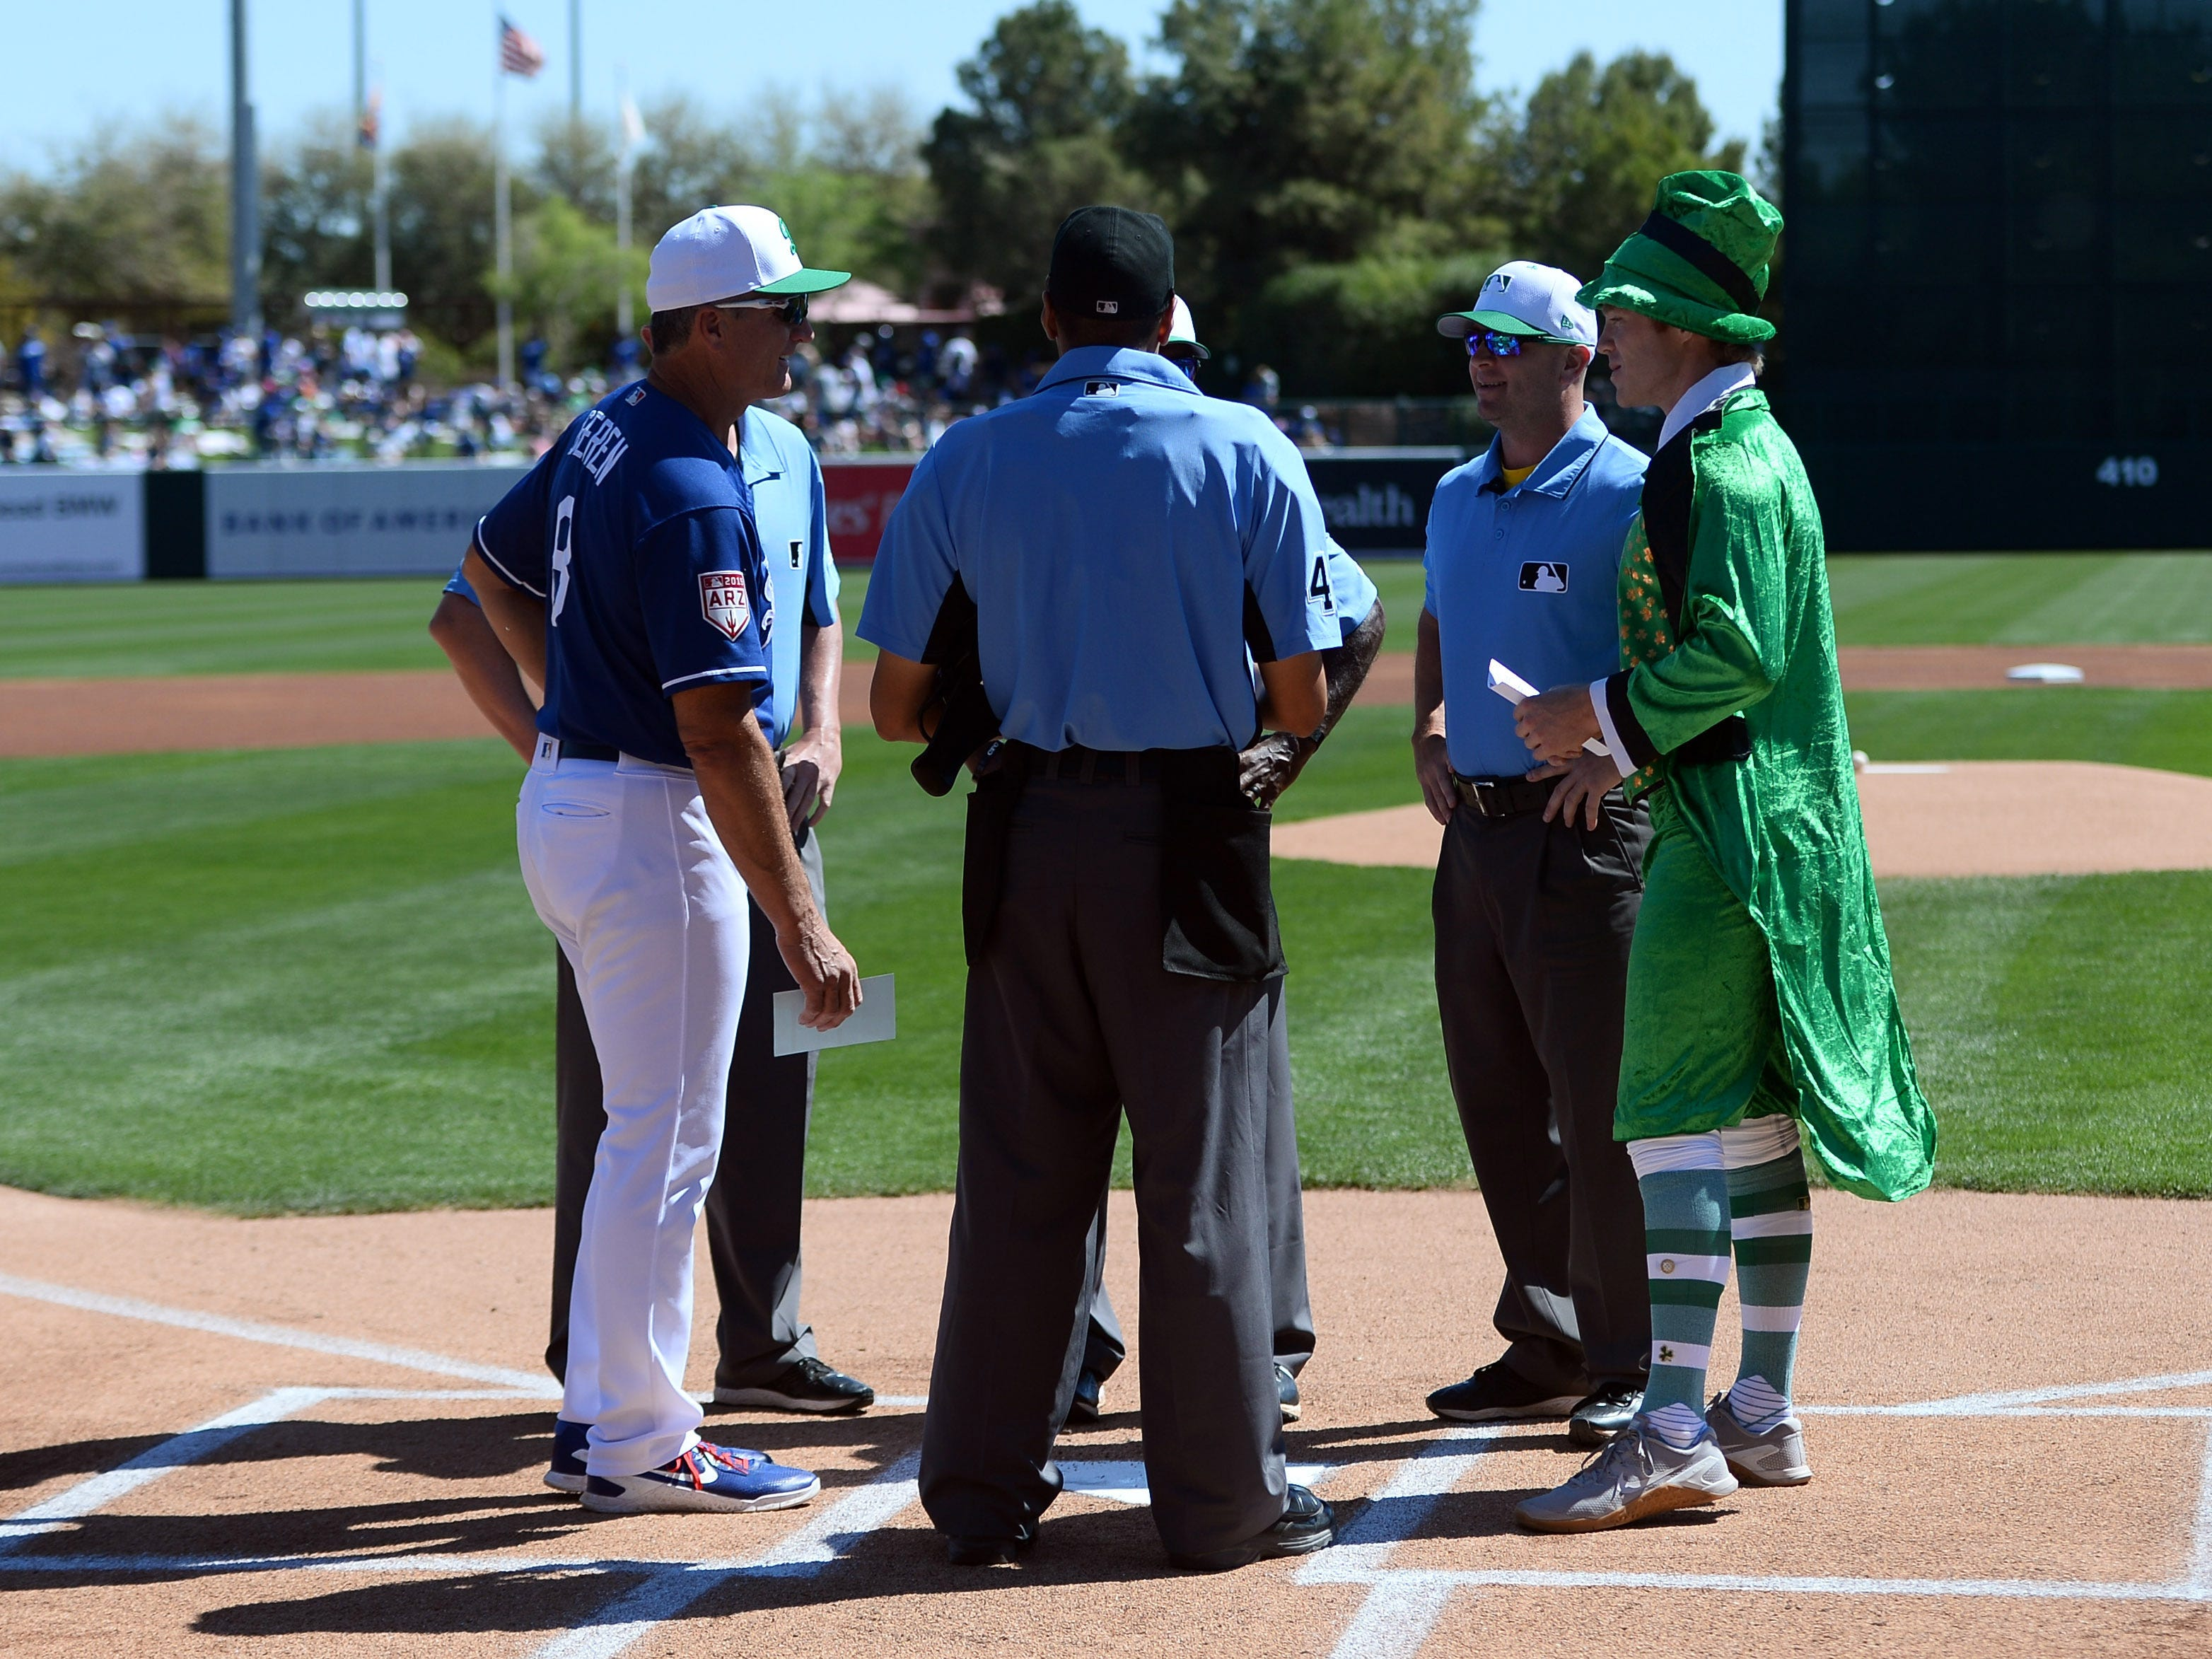 Brewers strength and conditioning intern Johnny Davis brings the team's lineup card to home dressed in a leprechaun outfit before the game against the Dodgers on Sunday.